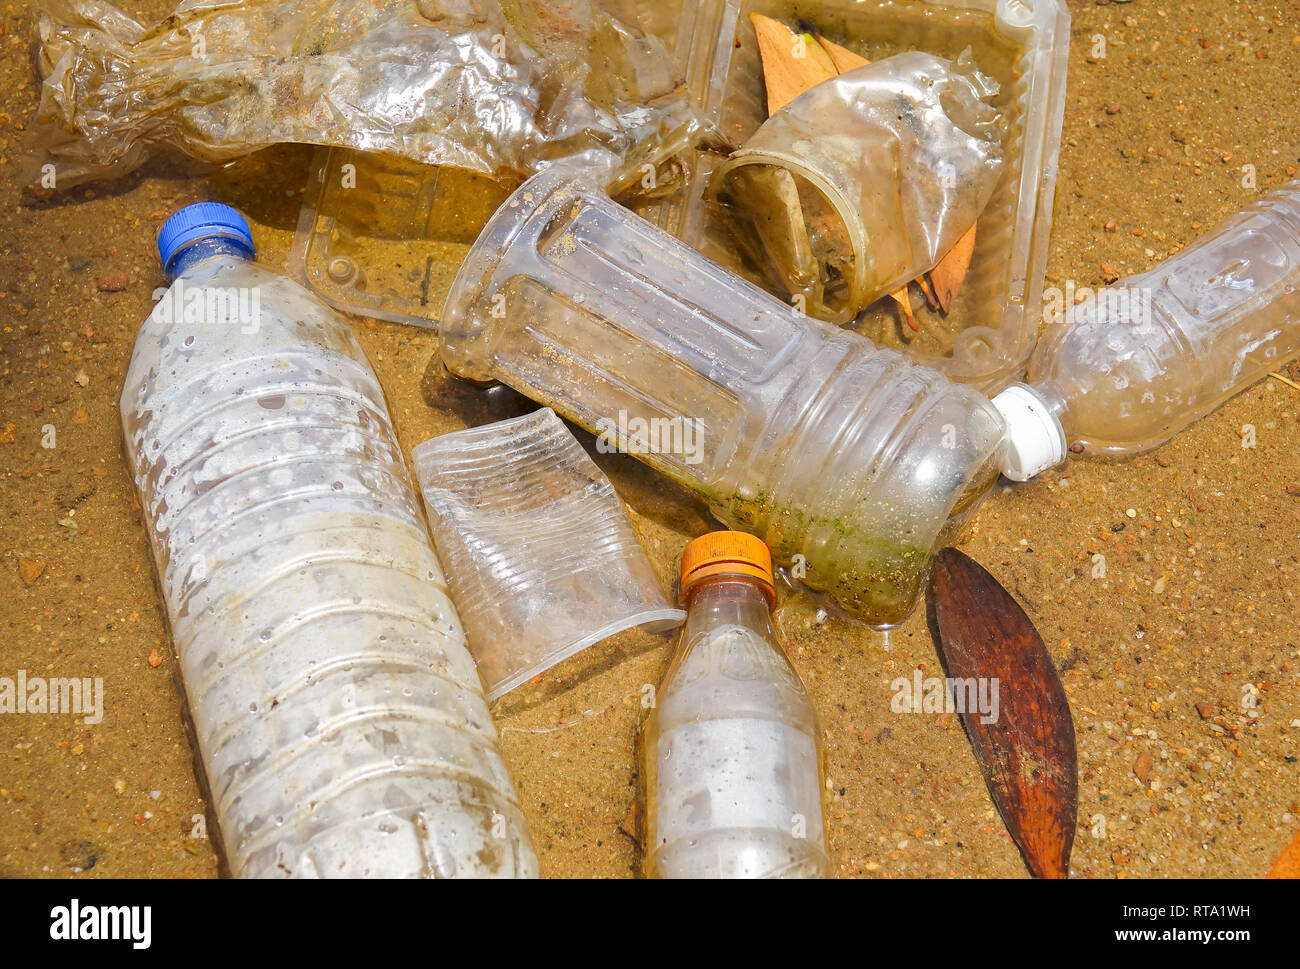 Bad enviromental habit of improper disposal of non-biodegradable PVC cups and bottles in a lake. Selective focus - Stock Image